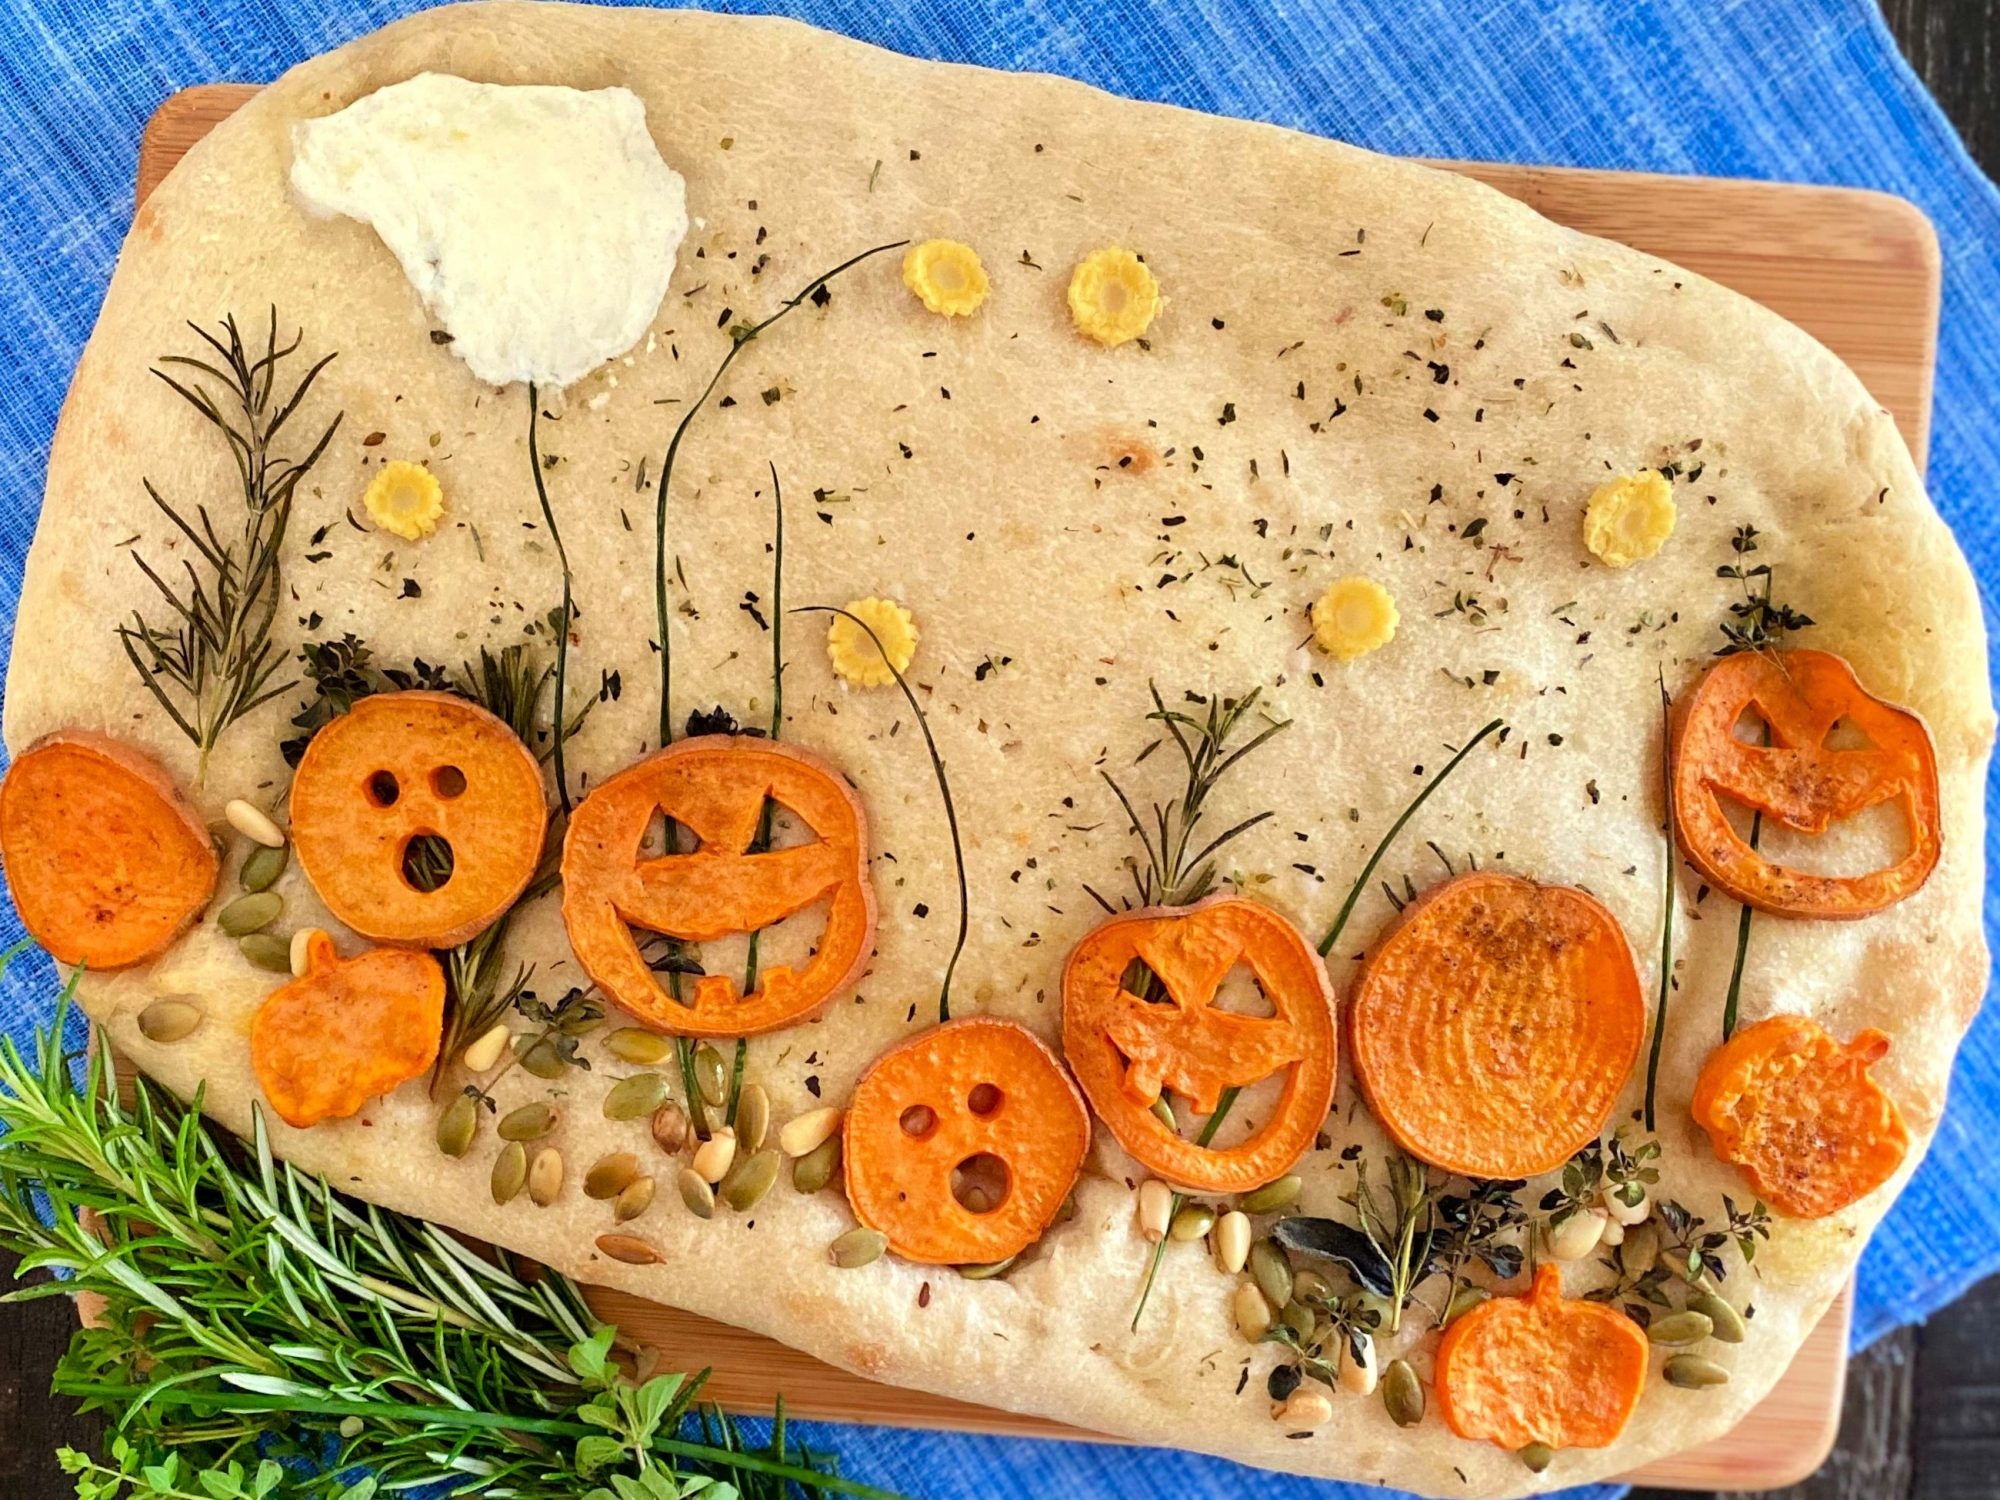 focaccia decorated like a pumpkin patch with yam slices for pumpkins